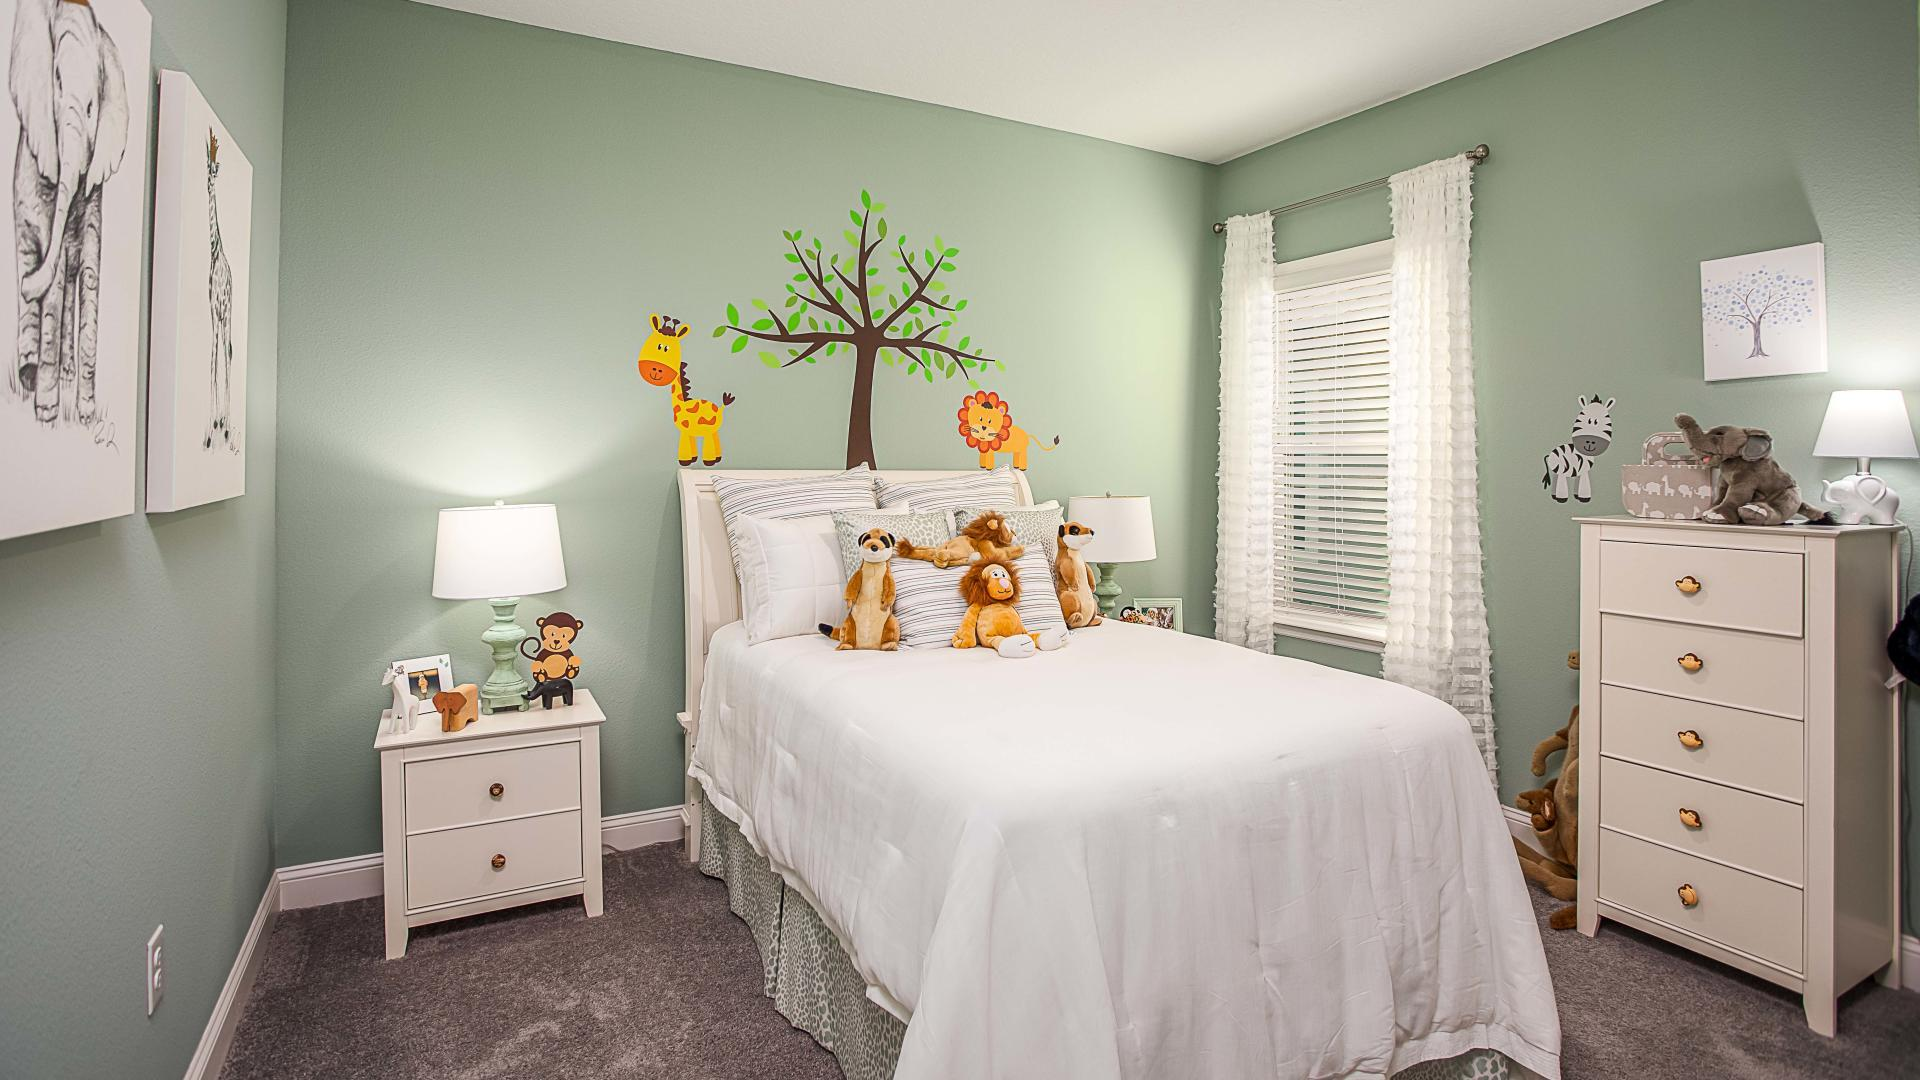 Bedroom featured in the Miramar By Maronda Homes in Gainesville, FL